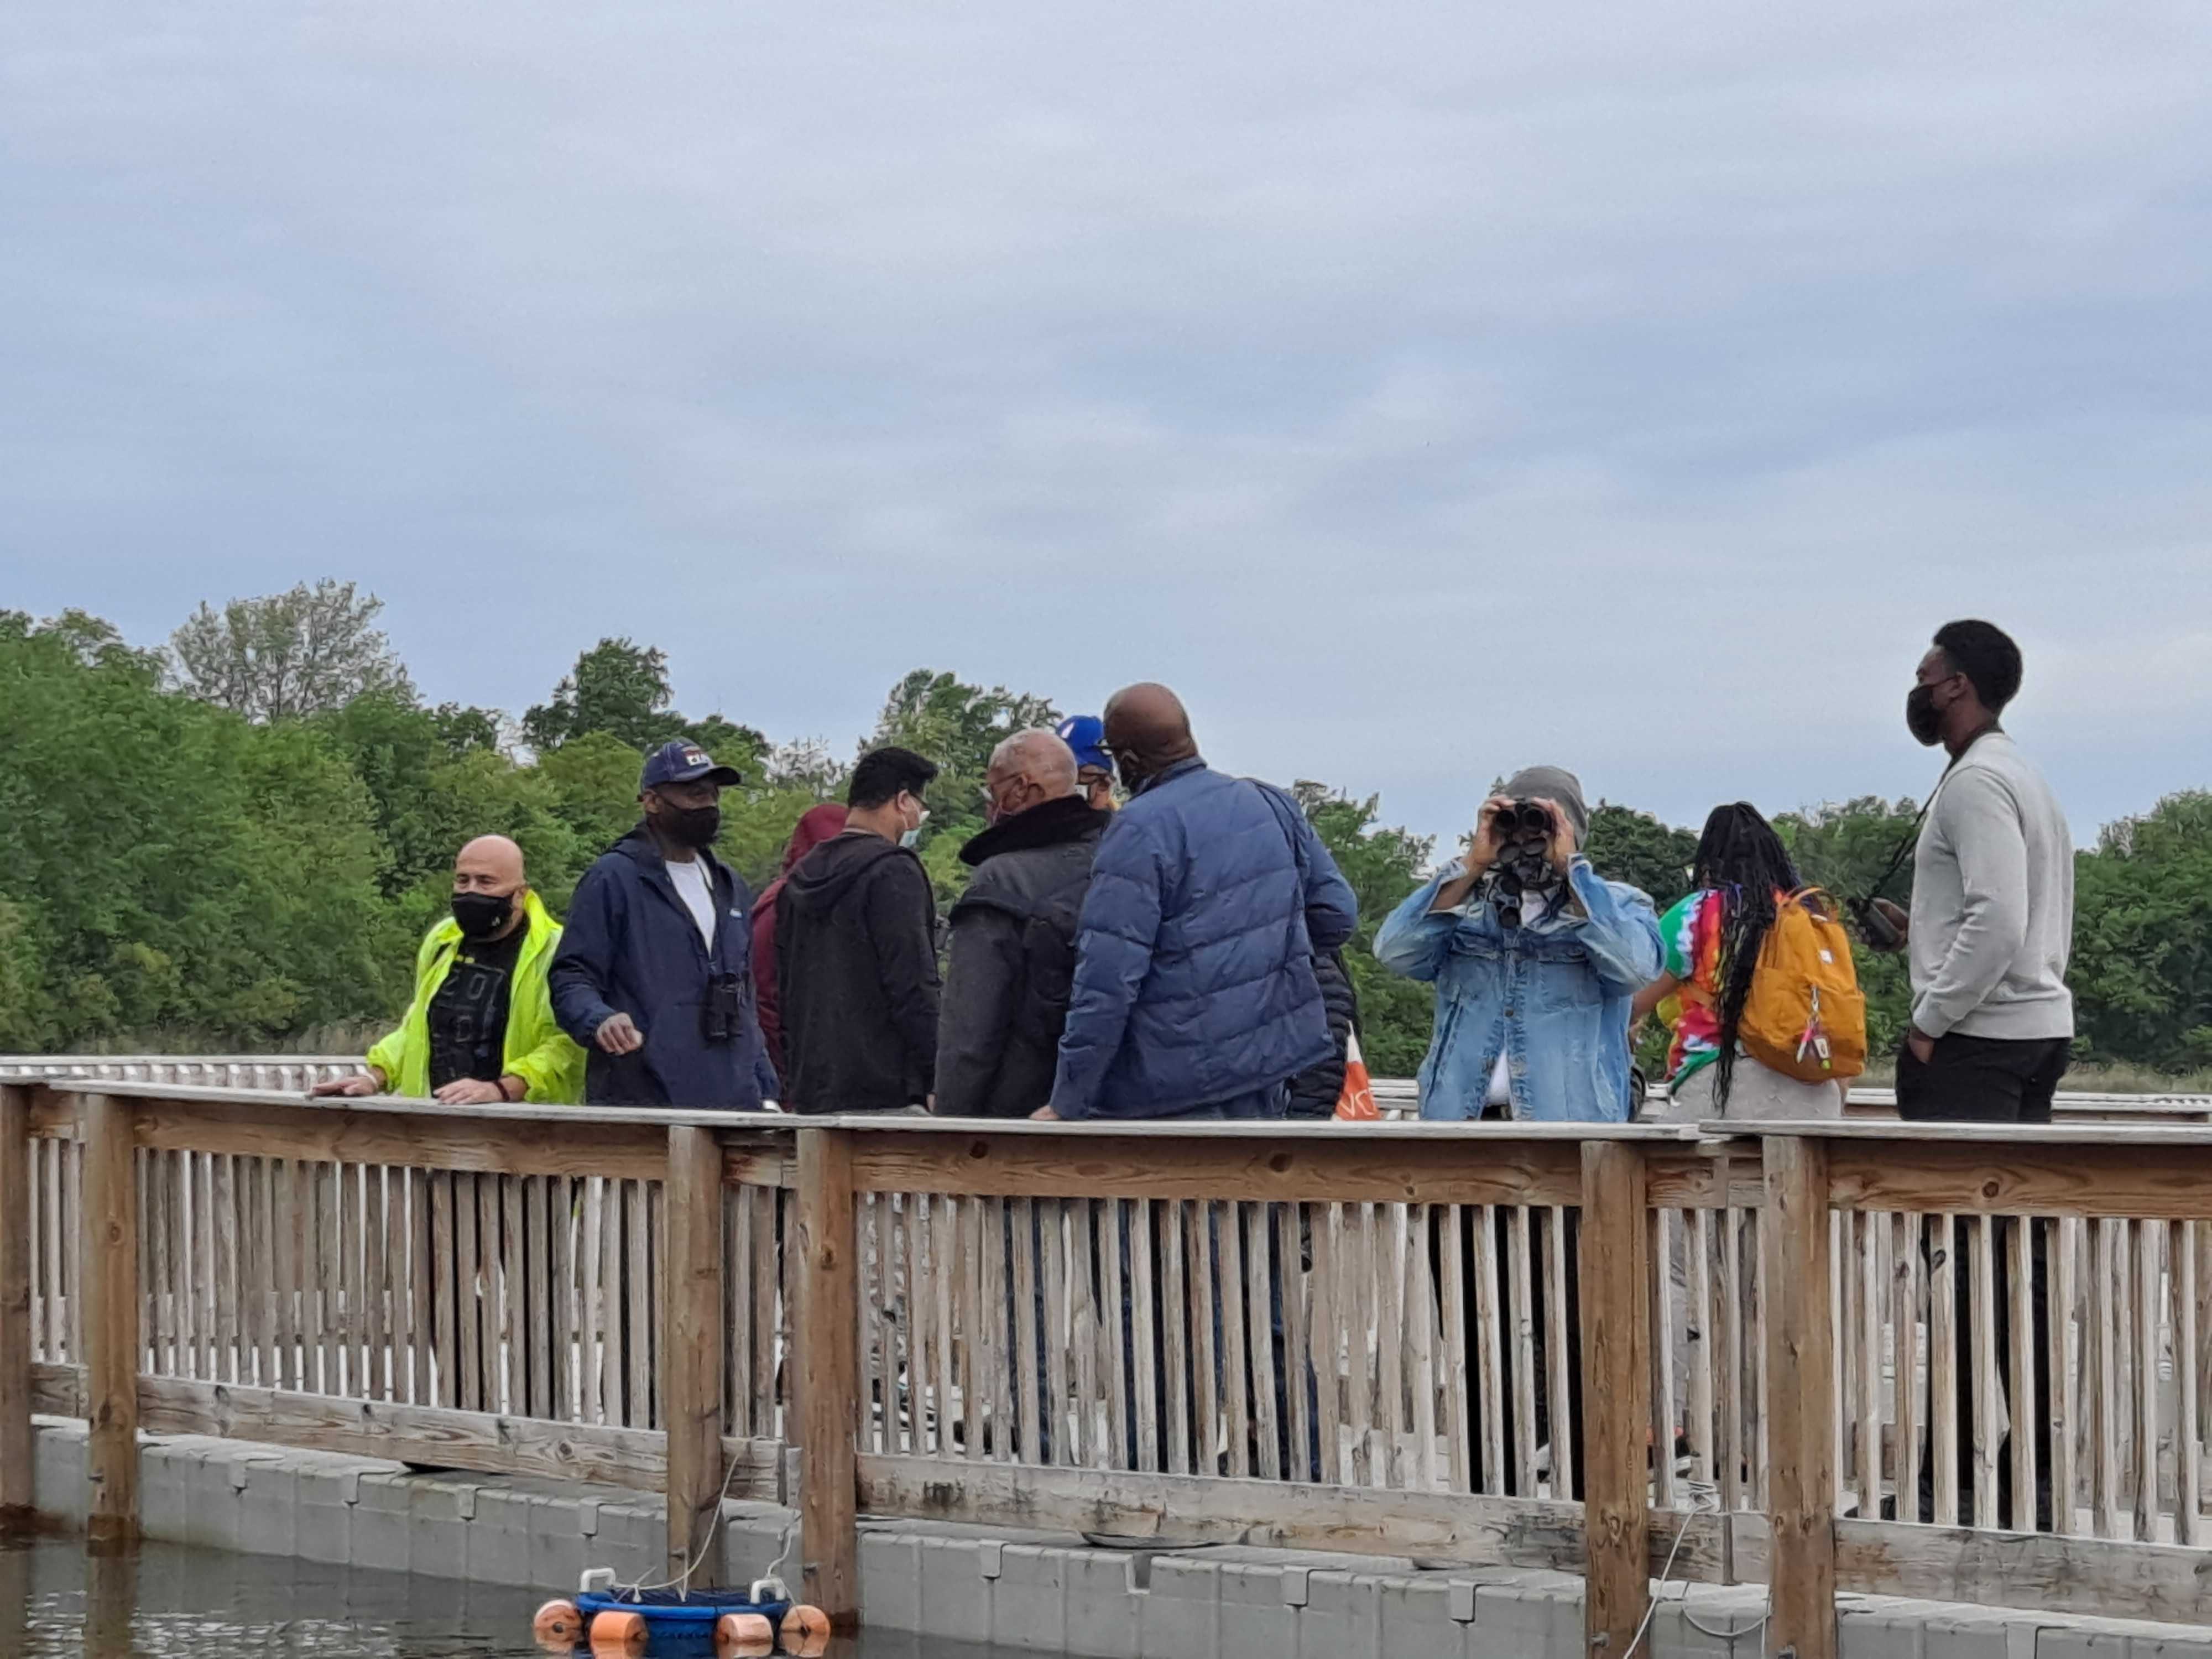 Keith Russell teaches people how to identify different birds around Fairmount Park.